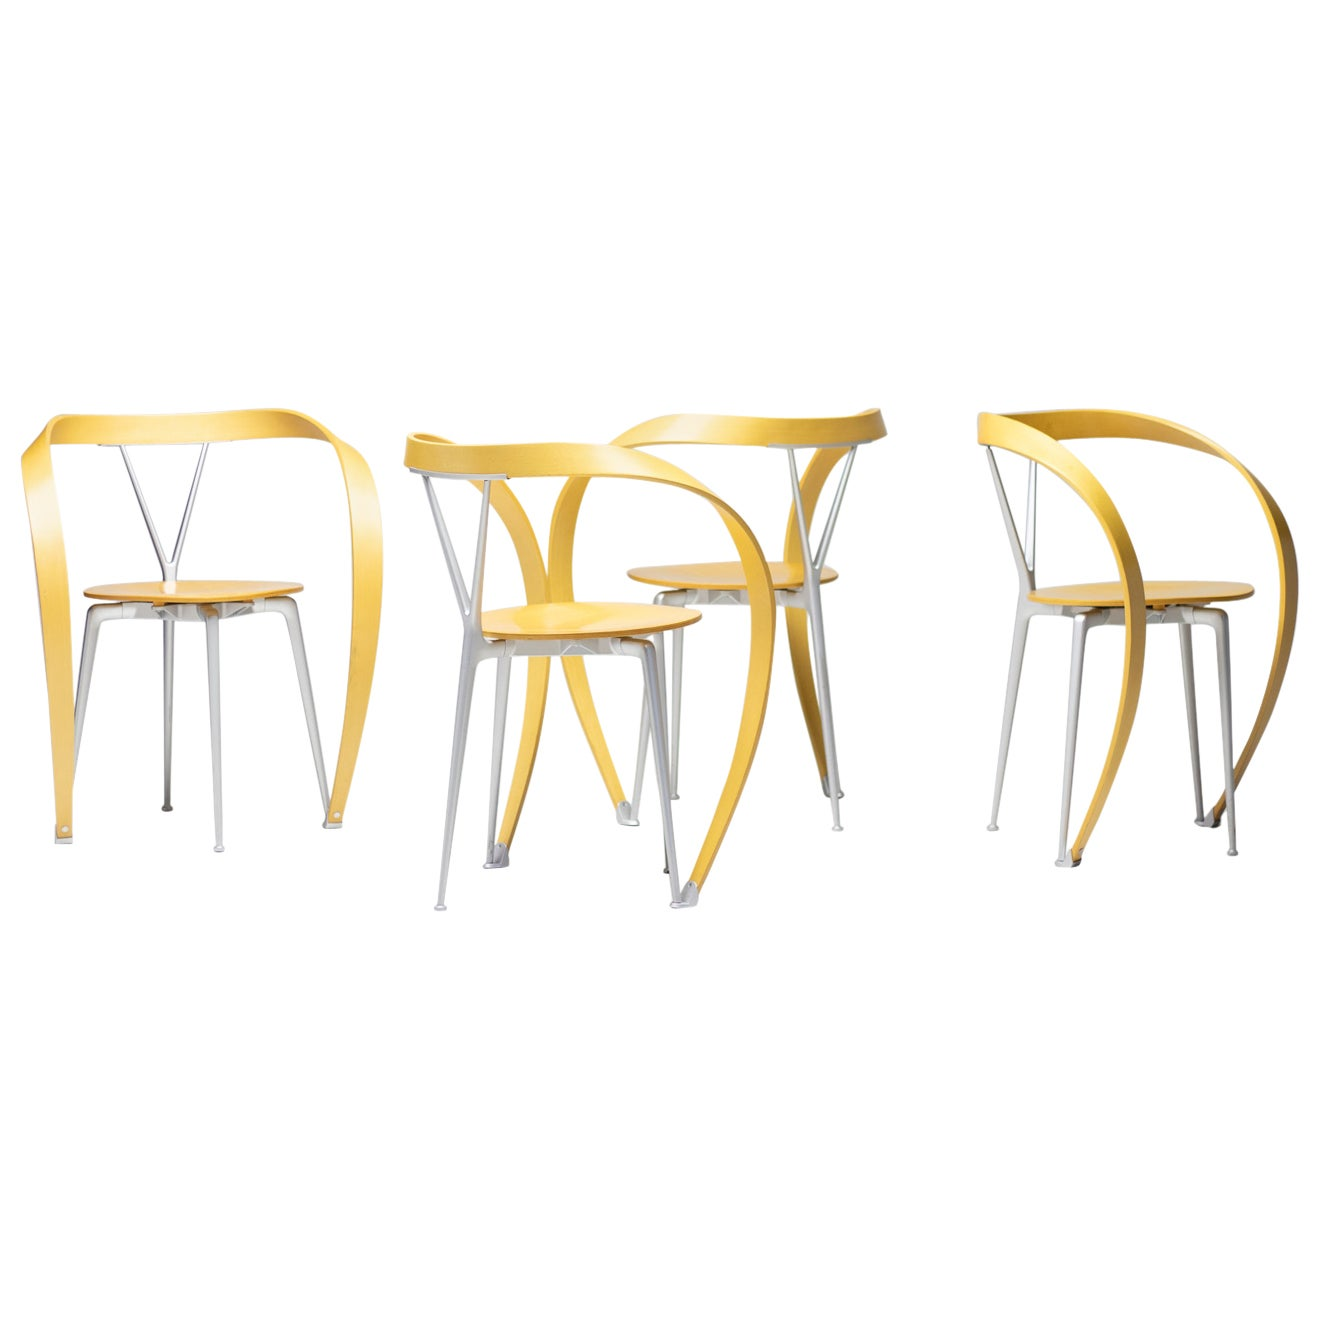 Set of Four Revers Chairs by Andrea Branzi for Cassina, Italy